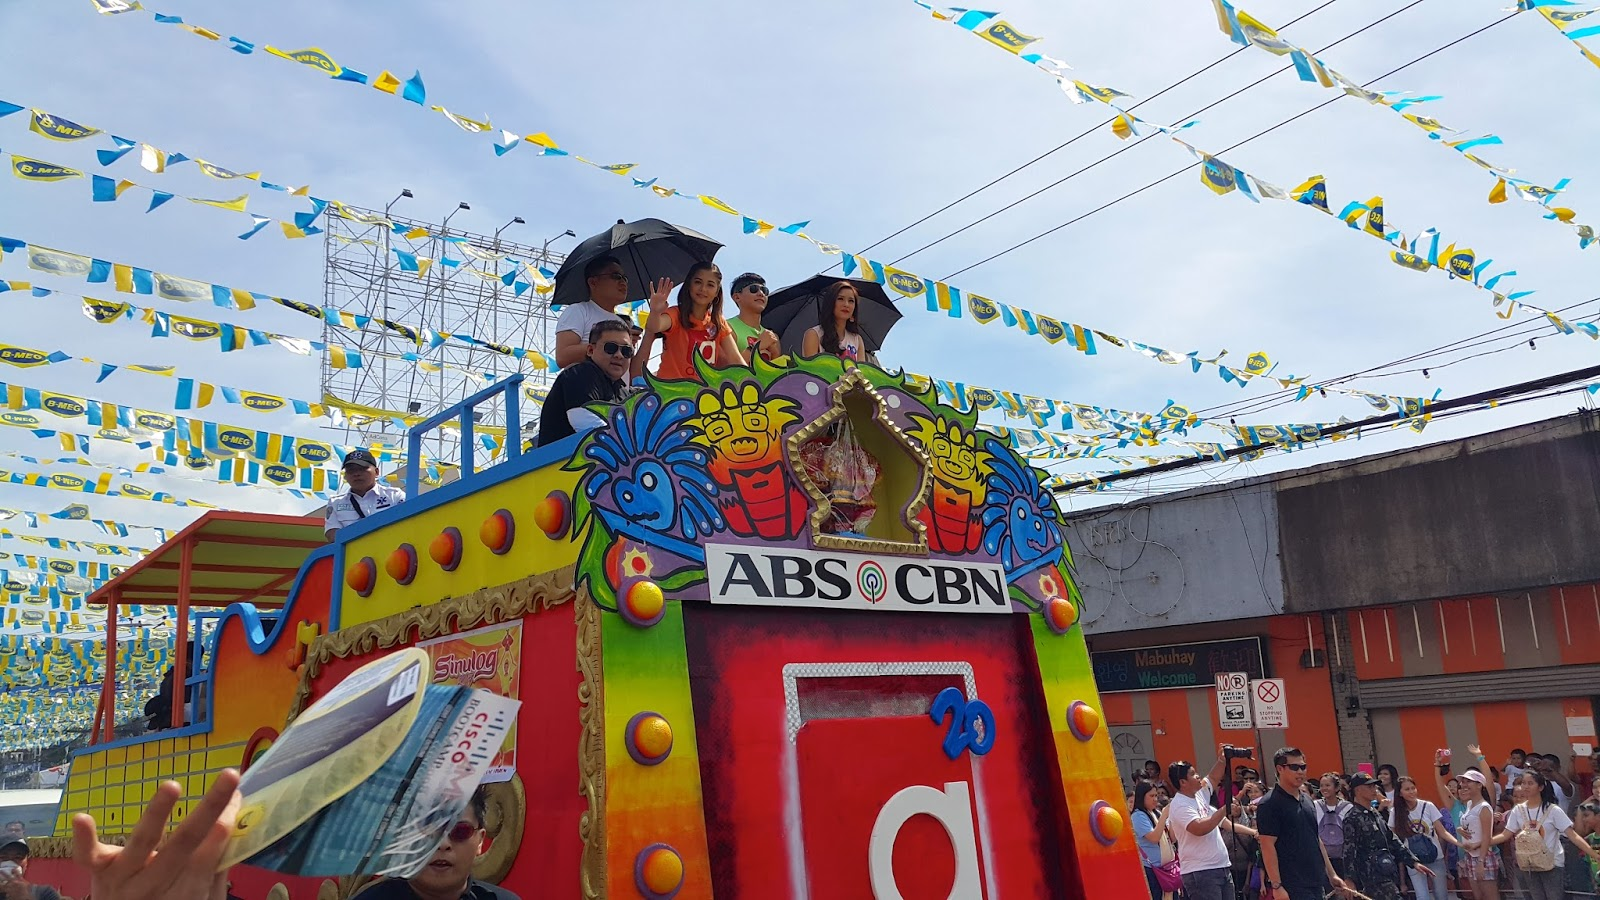 ABS-CBN float at the Sinulog 2015